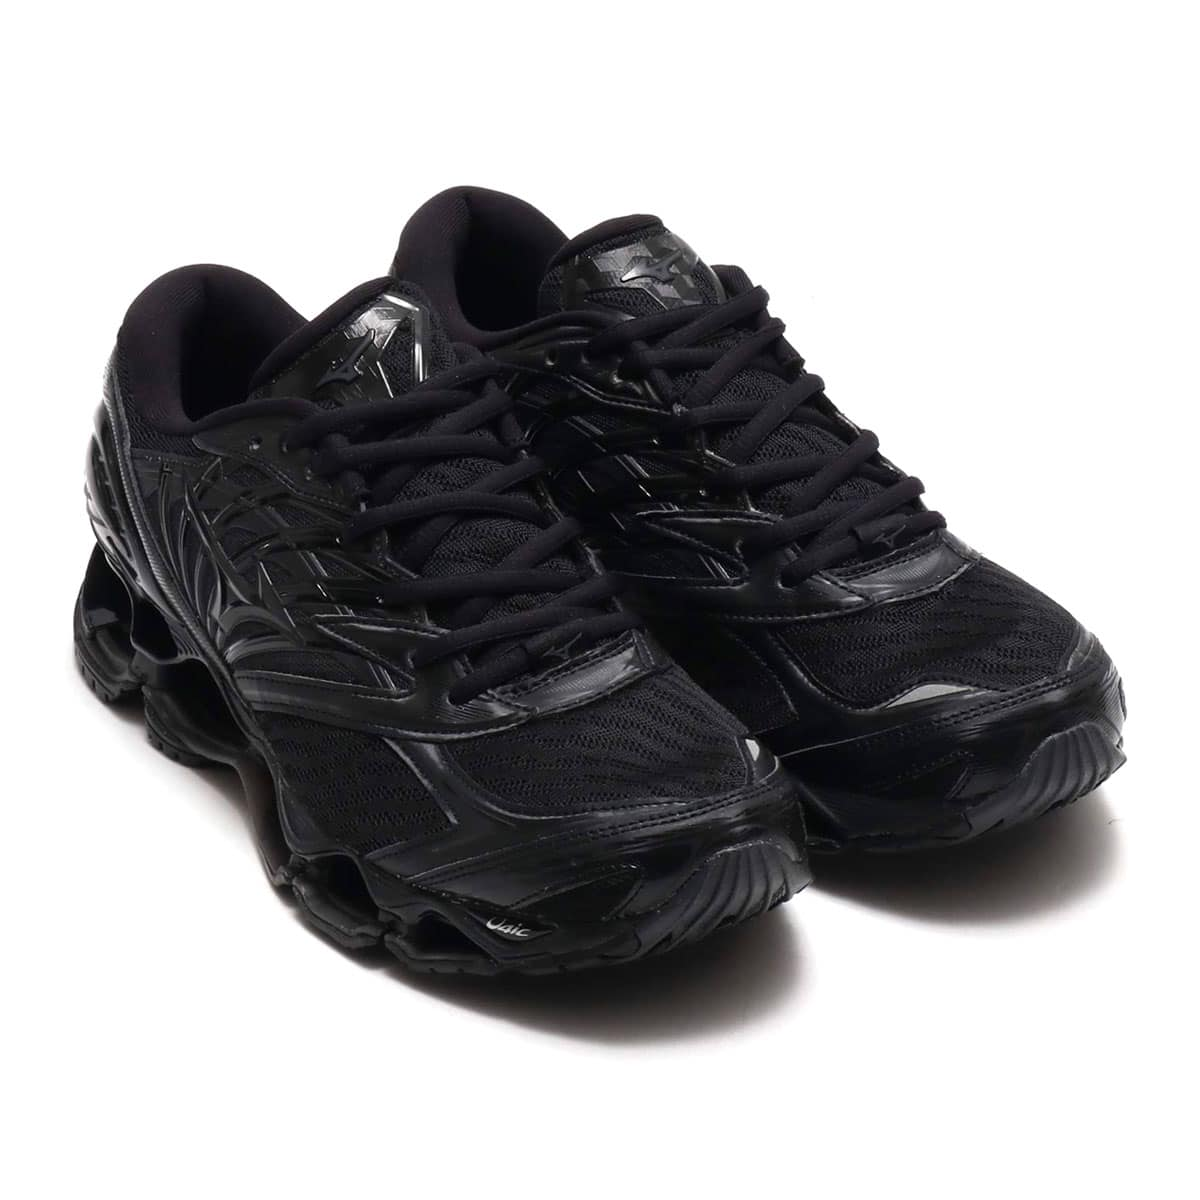 MIZUNO WAVE PROPHECY 8 BLACK/SILVER 19AW-I_photo_large